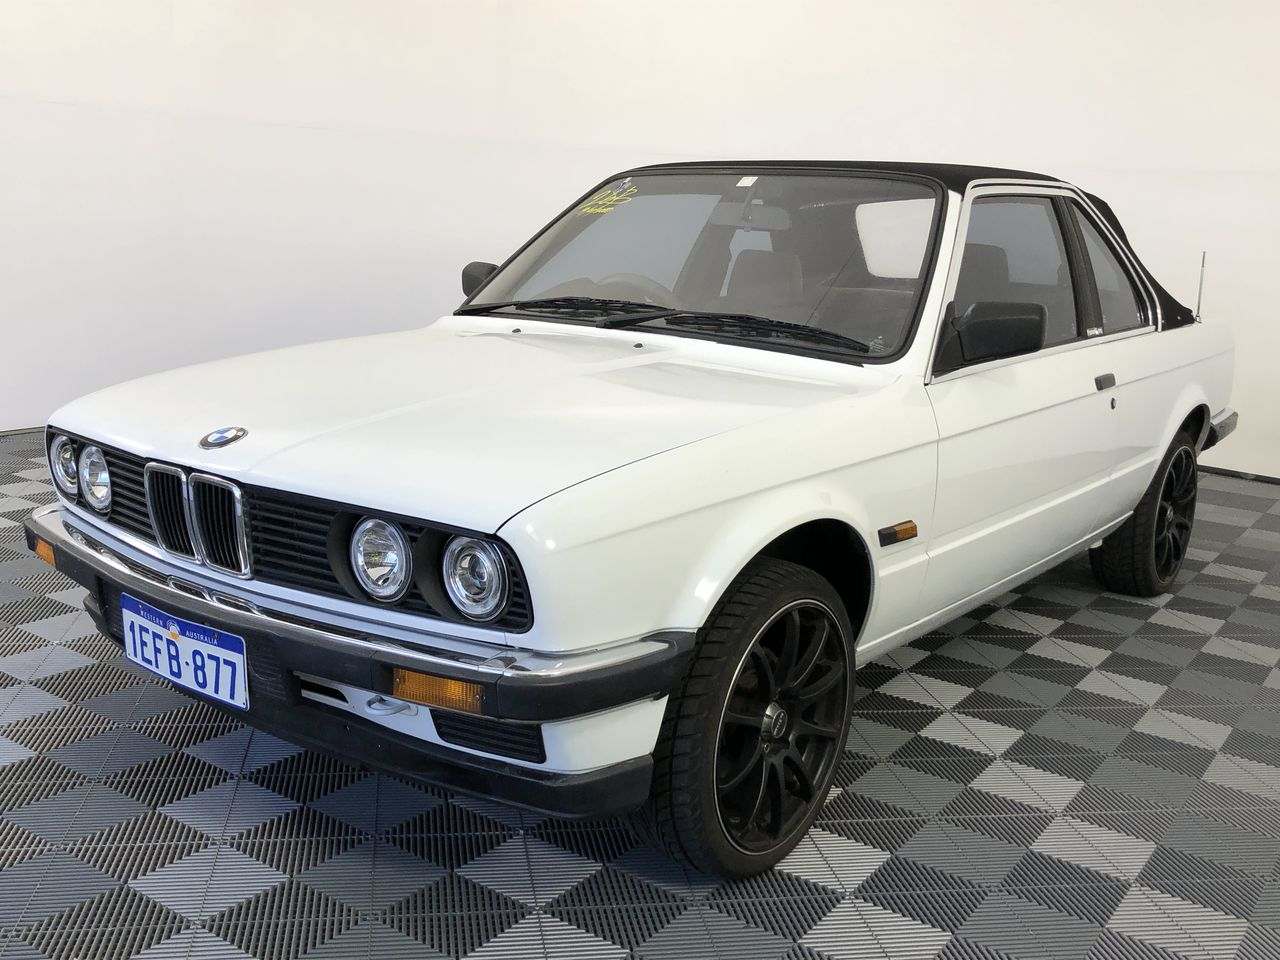 1985 BMW 318i Automatic Convertible